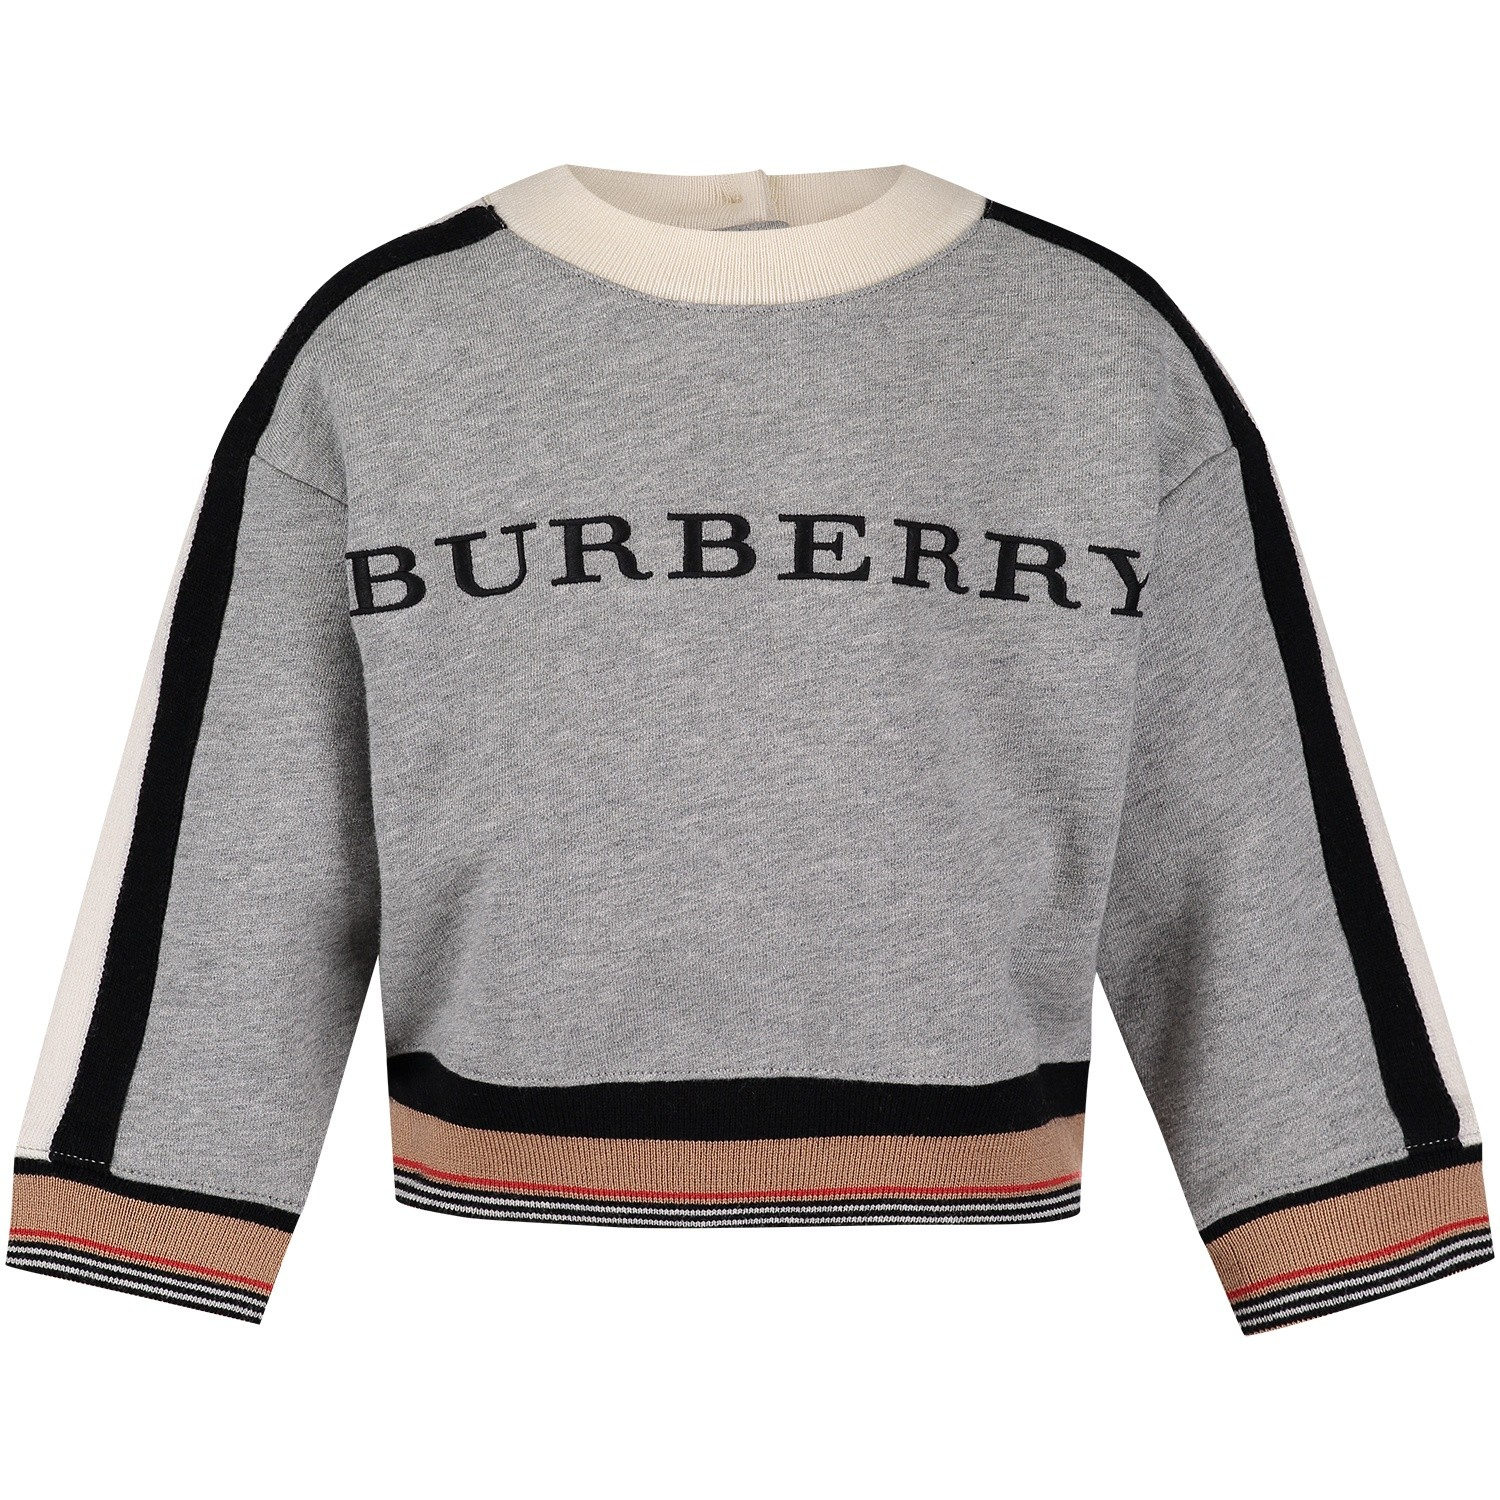 Picture of Burberry 8001724 baby sweater gray